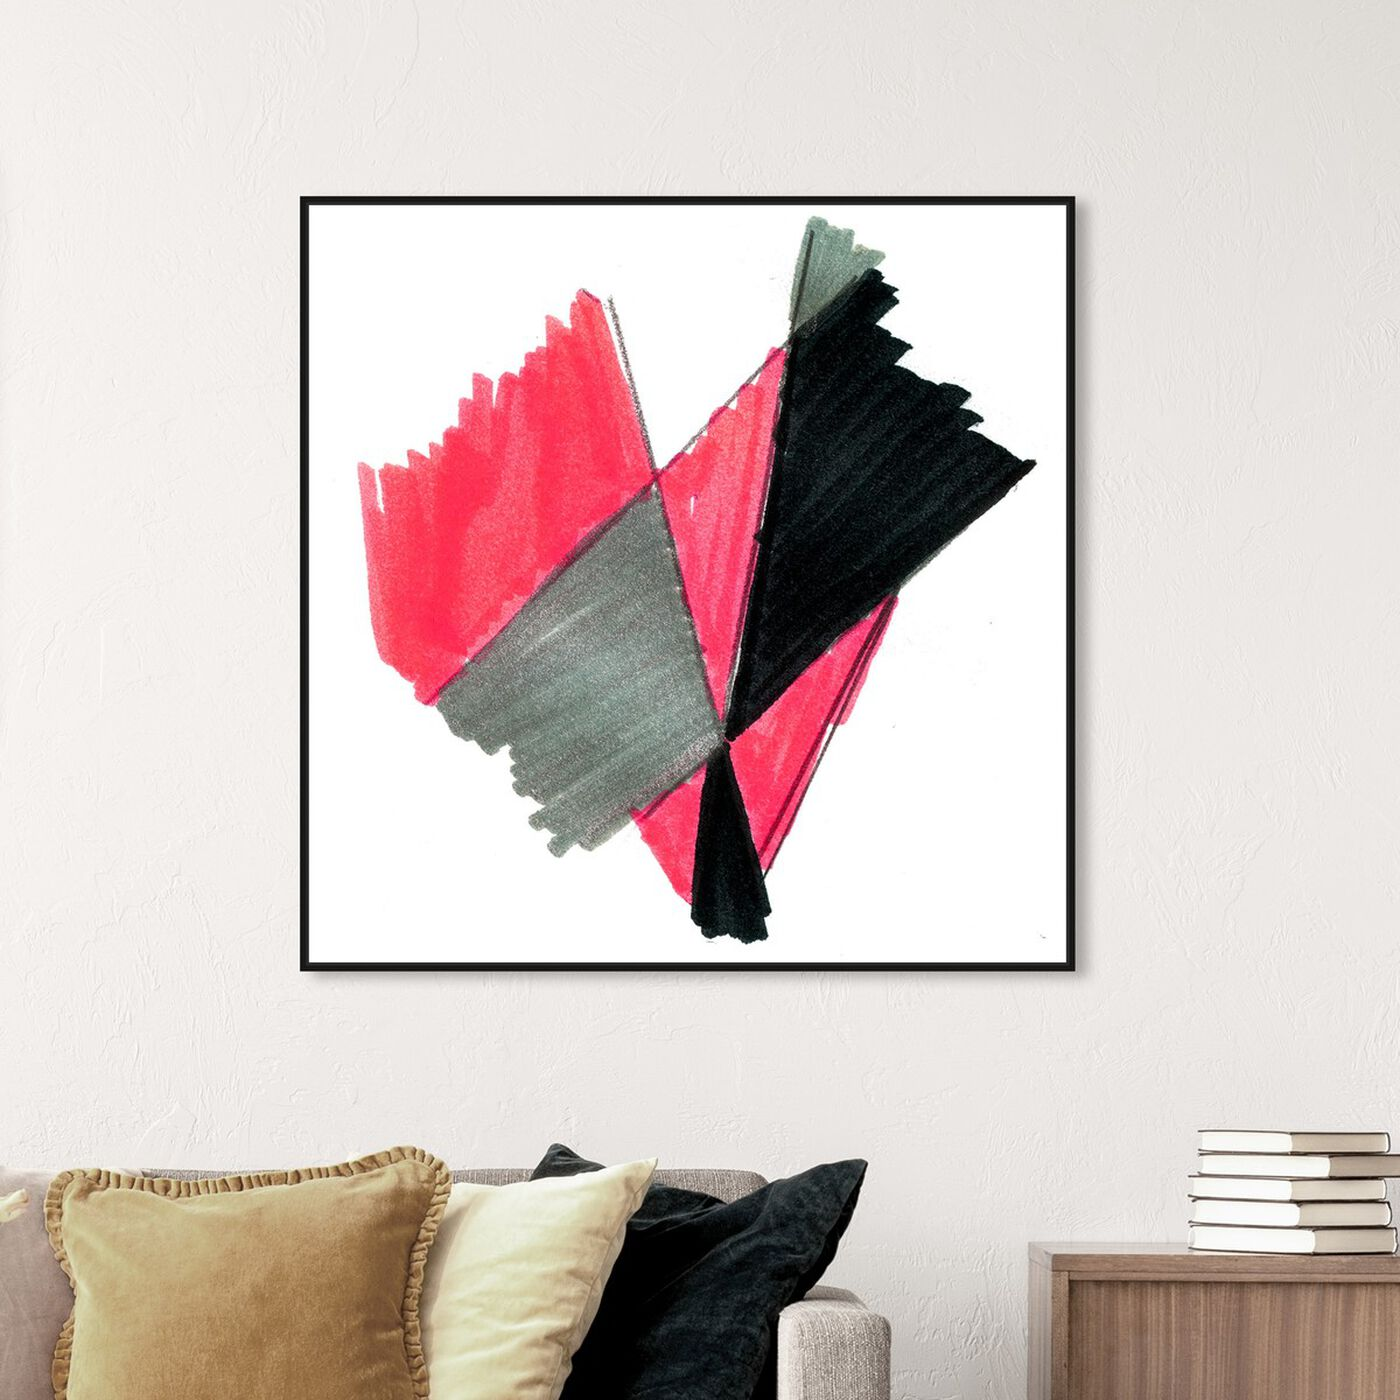 Hanging view of MonHeart featuring abstract and geometric art.